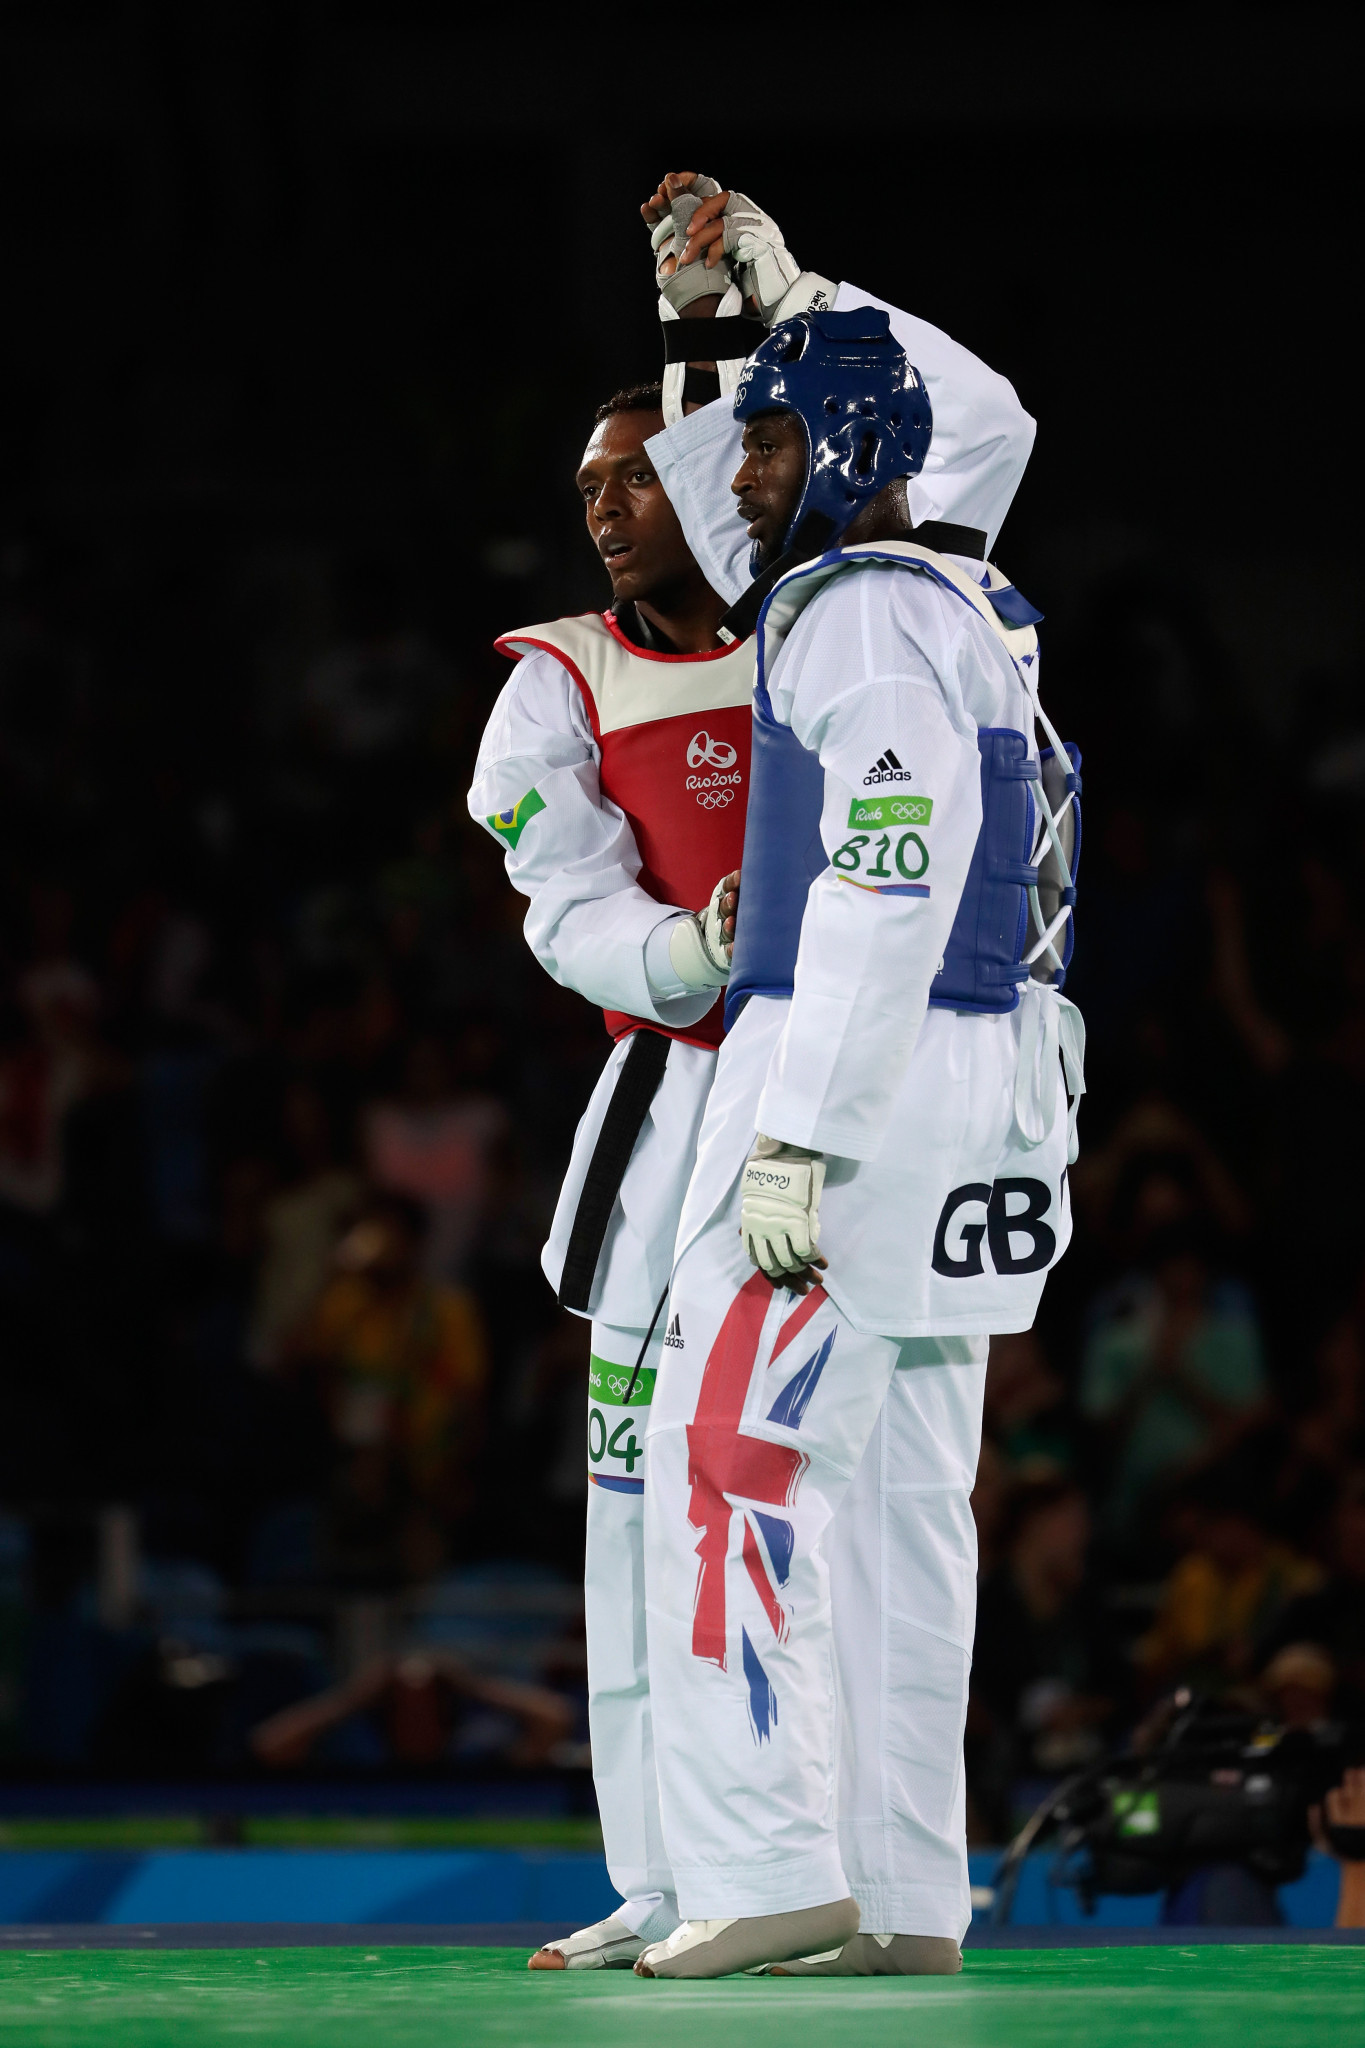 Mahama Cho, of Great Britain, seen here being consoled by Maicon Siqueira of Brazil after the Men's +80kg Bronze Medal contest in the Rio 2016 Olympic Games ©Getty Images